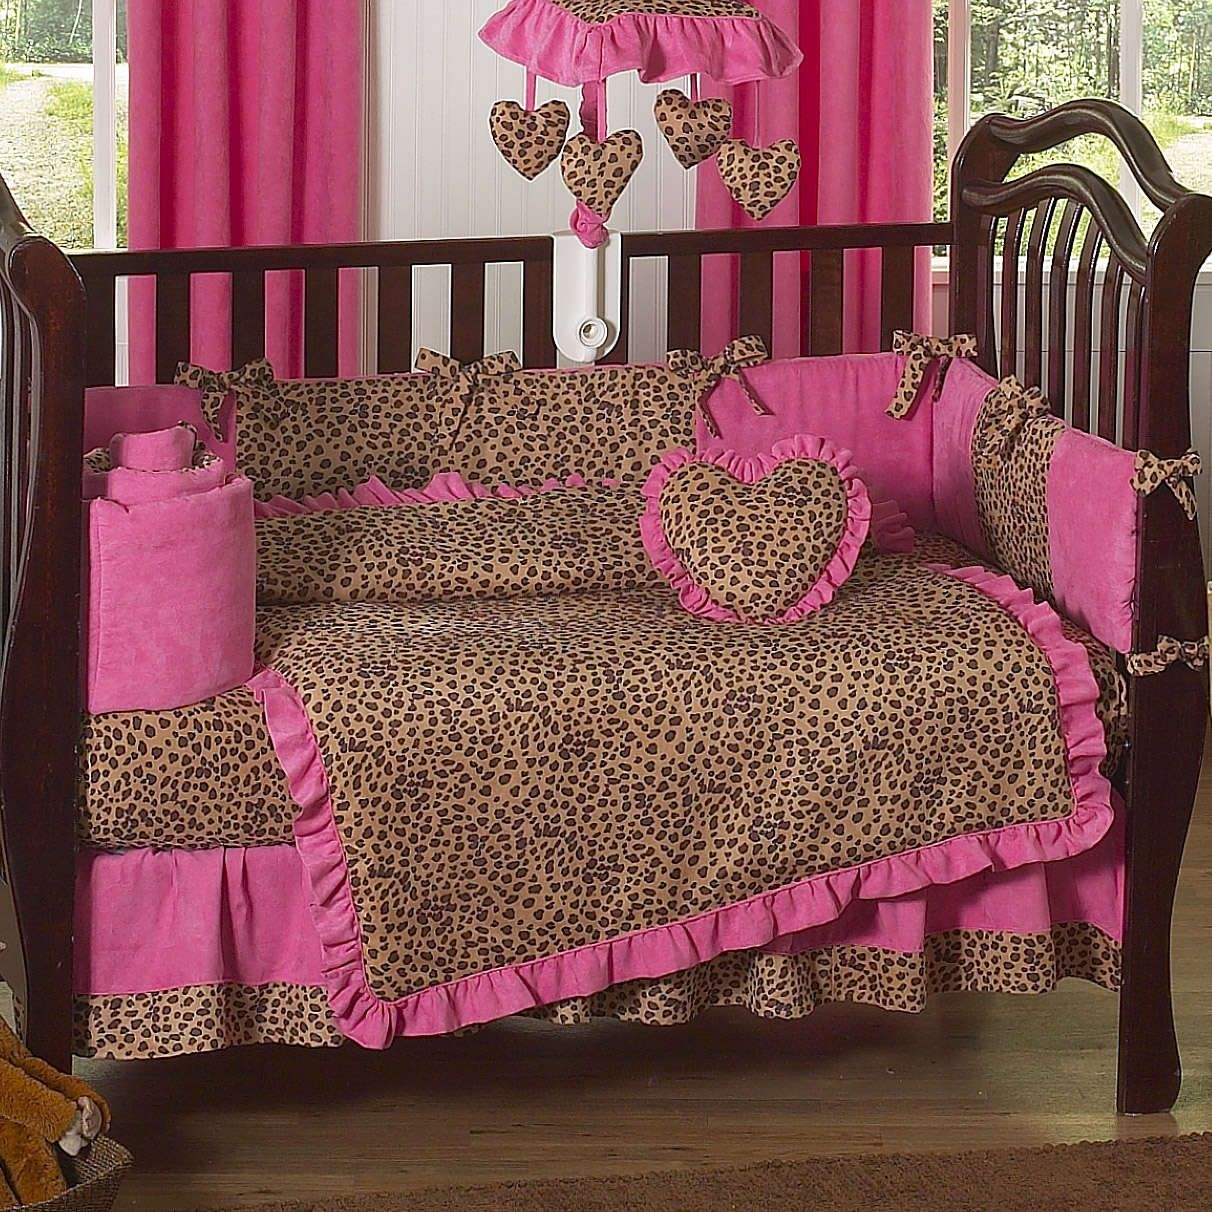 Pink Leopard Print Wallpaper For Bedroom Leopard Print Bedroom